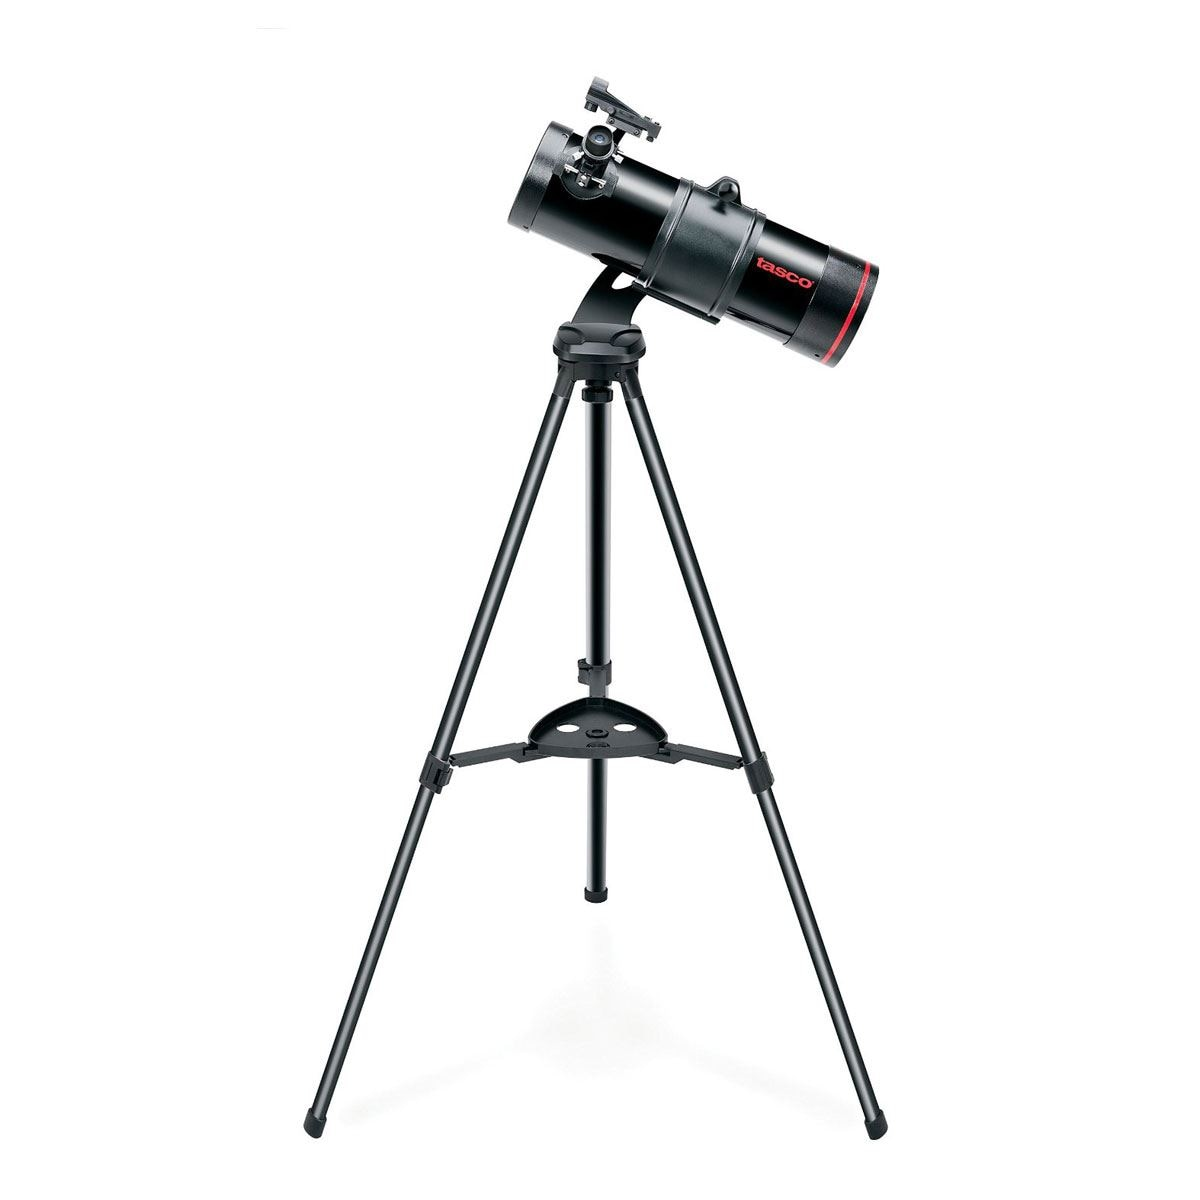 Telescopio tasco spacestation 375x1  - Sanborns